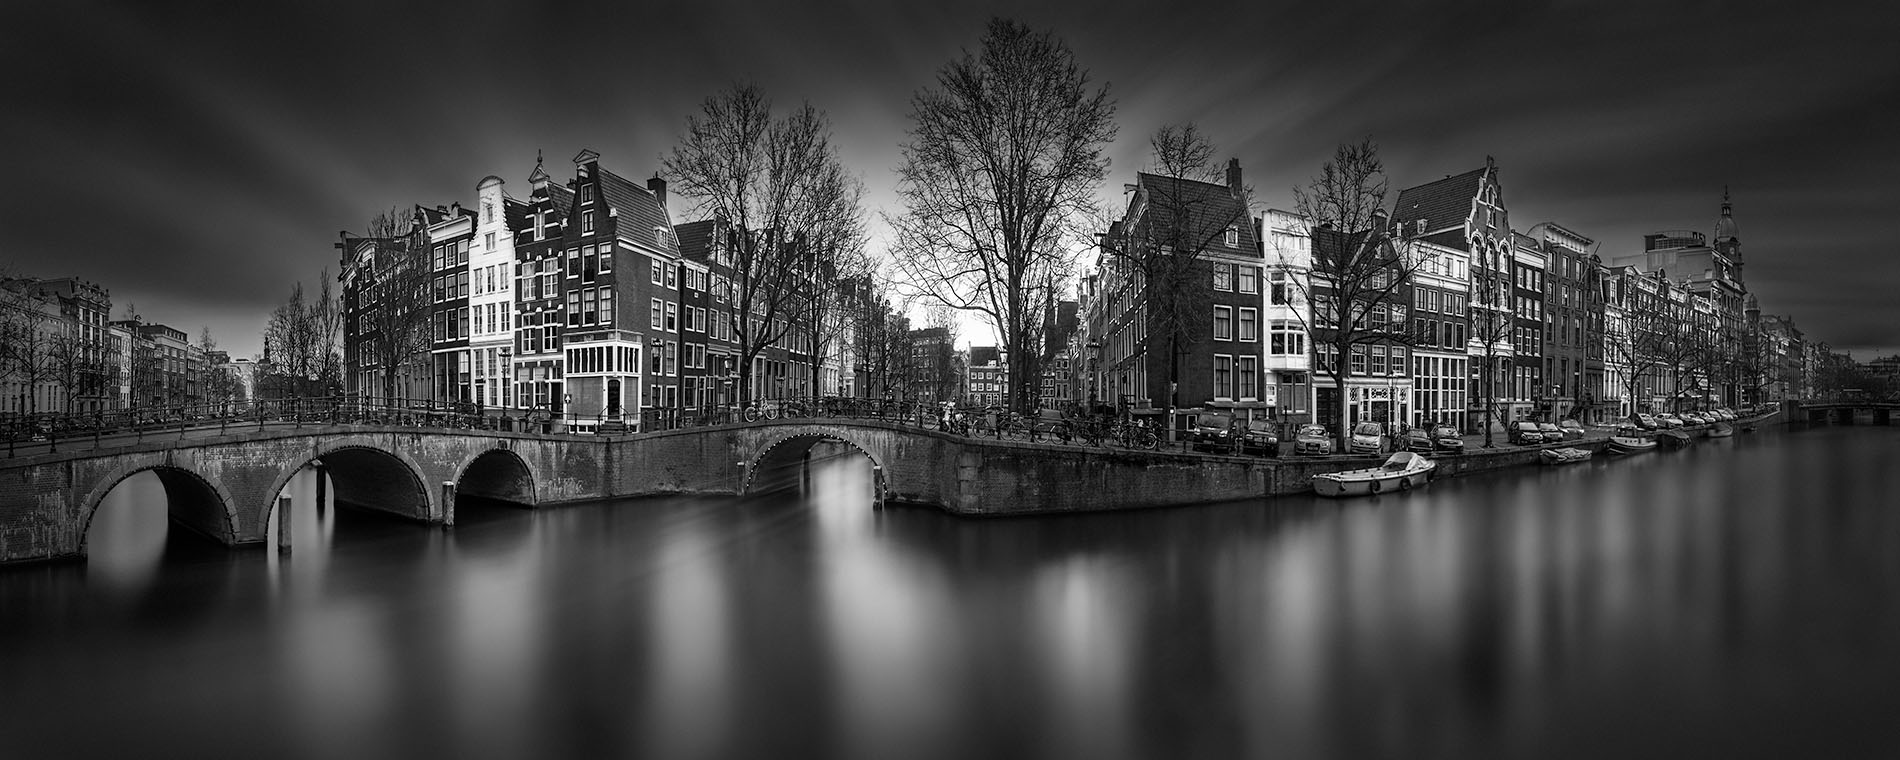 A Tale of the Past I - Keizersgracht Canal Amsterdam - © Julia Anna Gospodarou 2017 - fine art photography principles